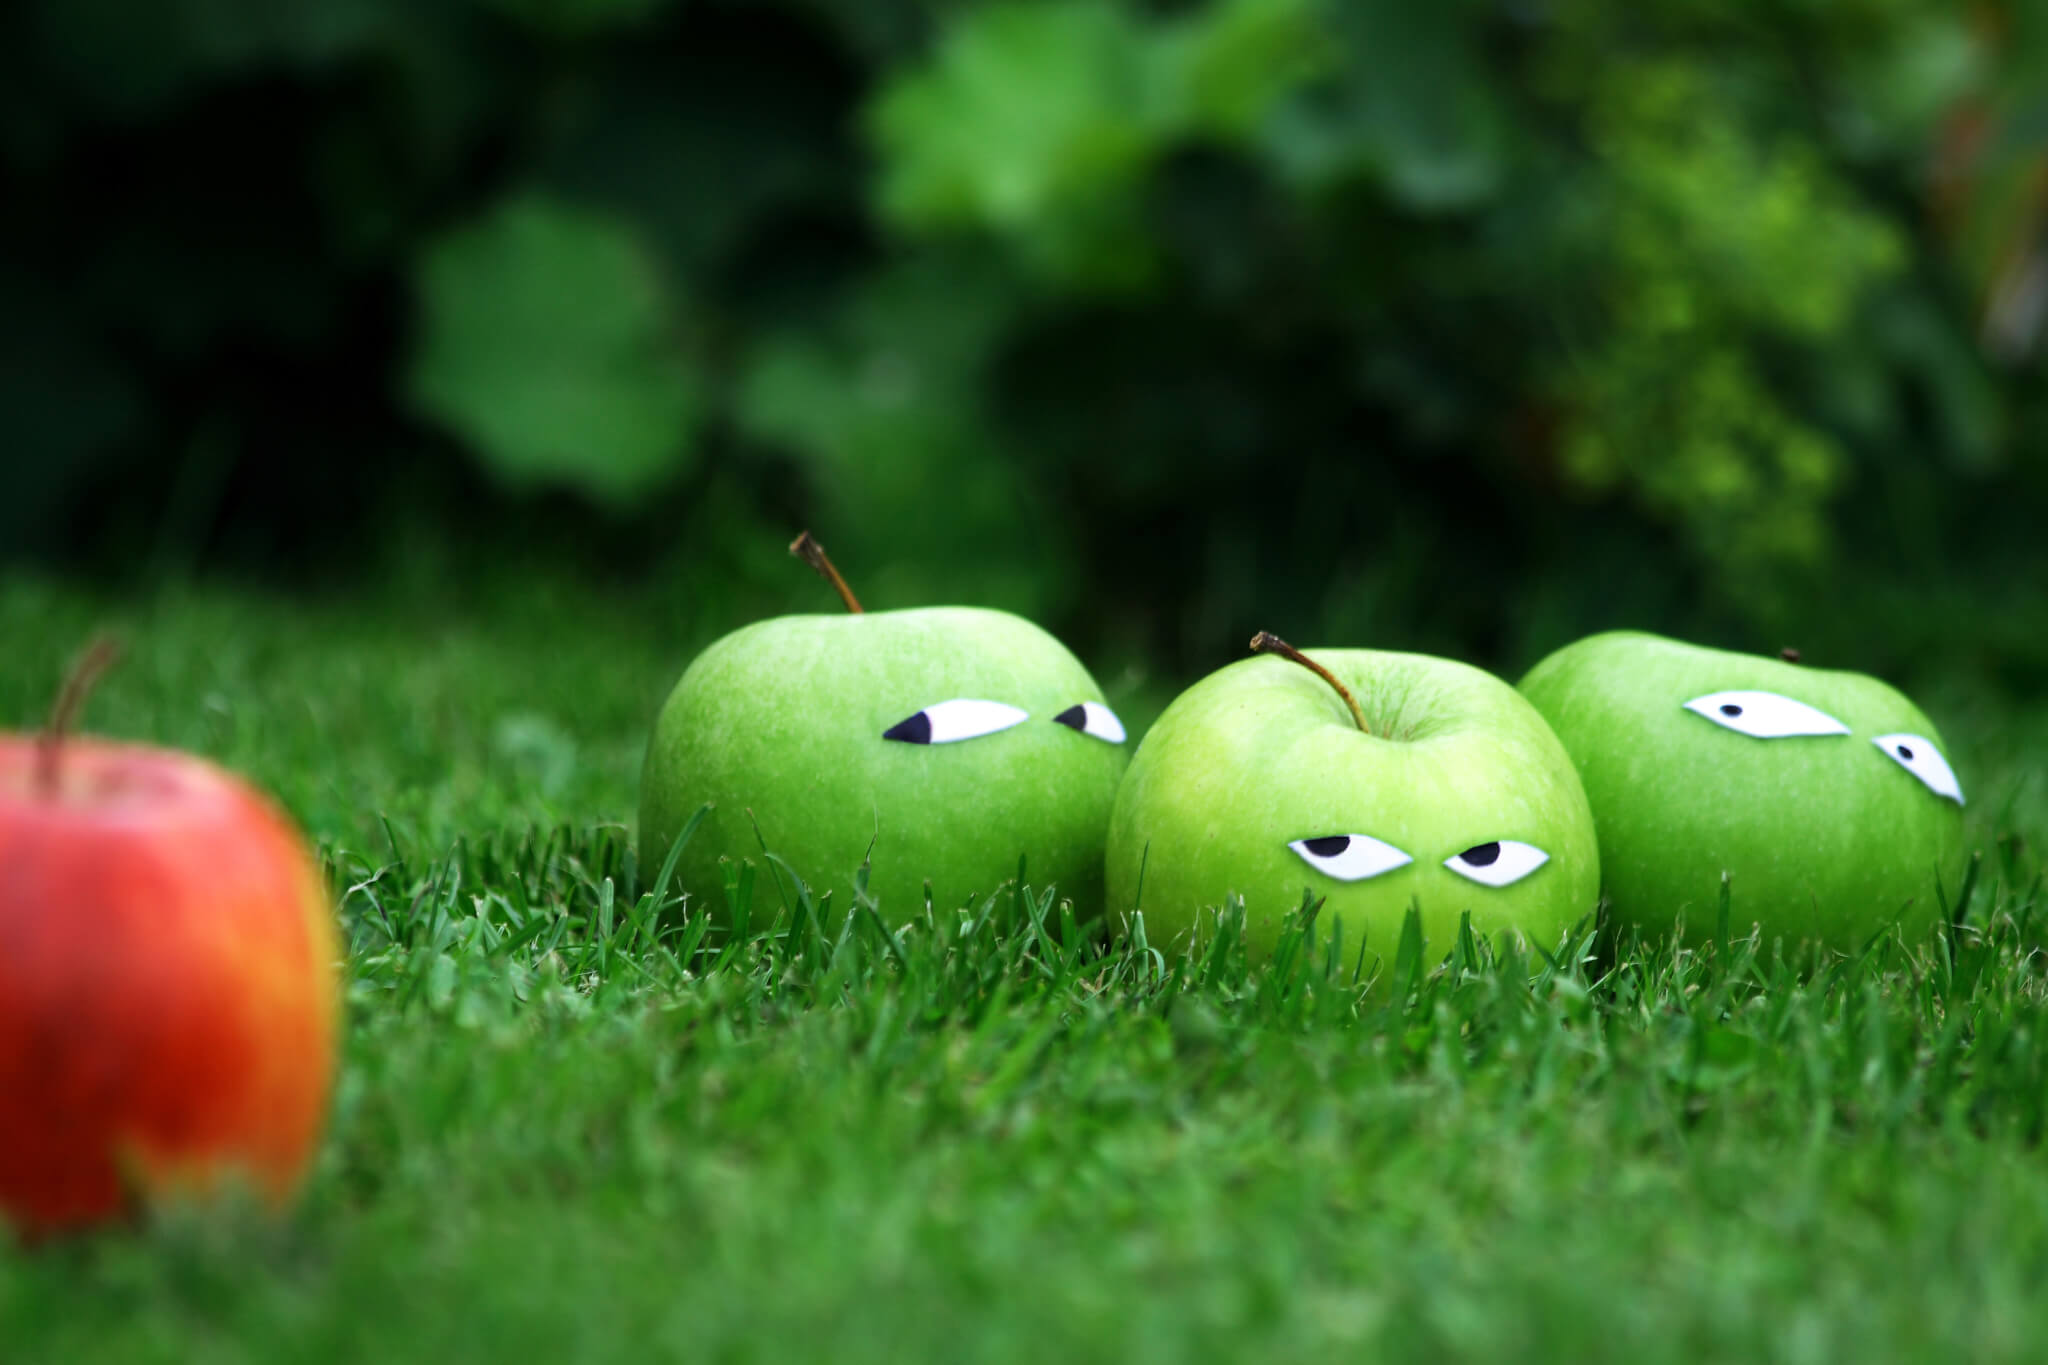 three green apples staring at a red apple